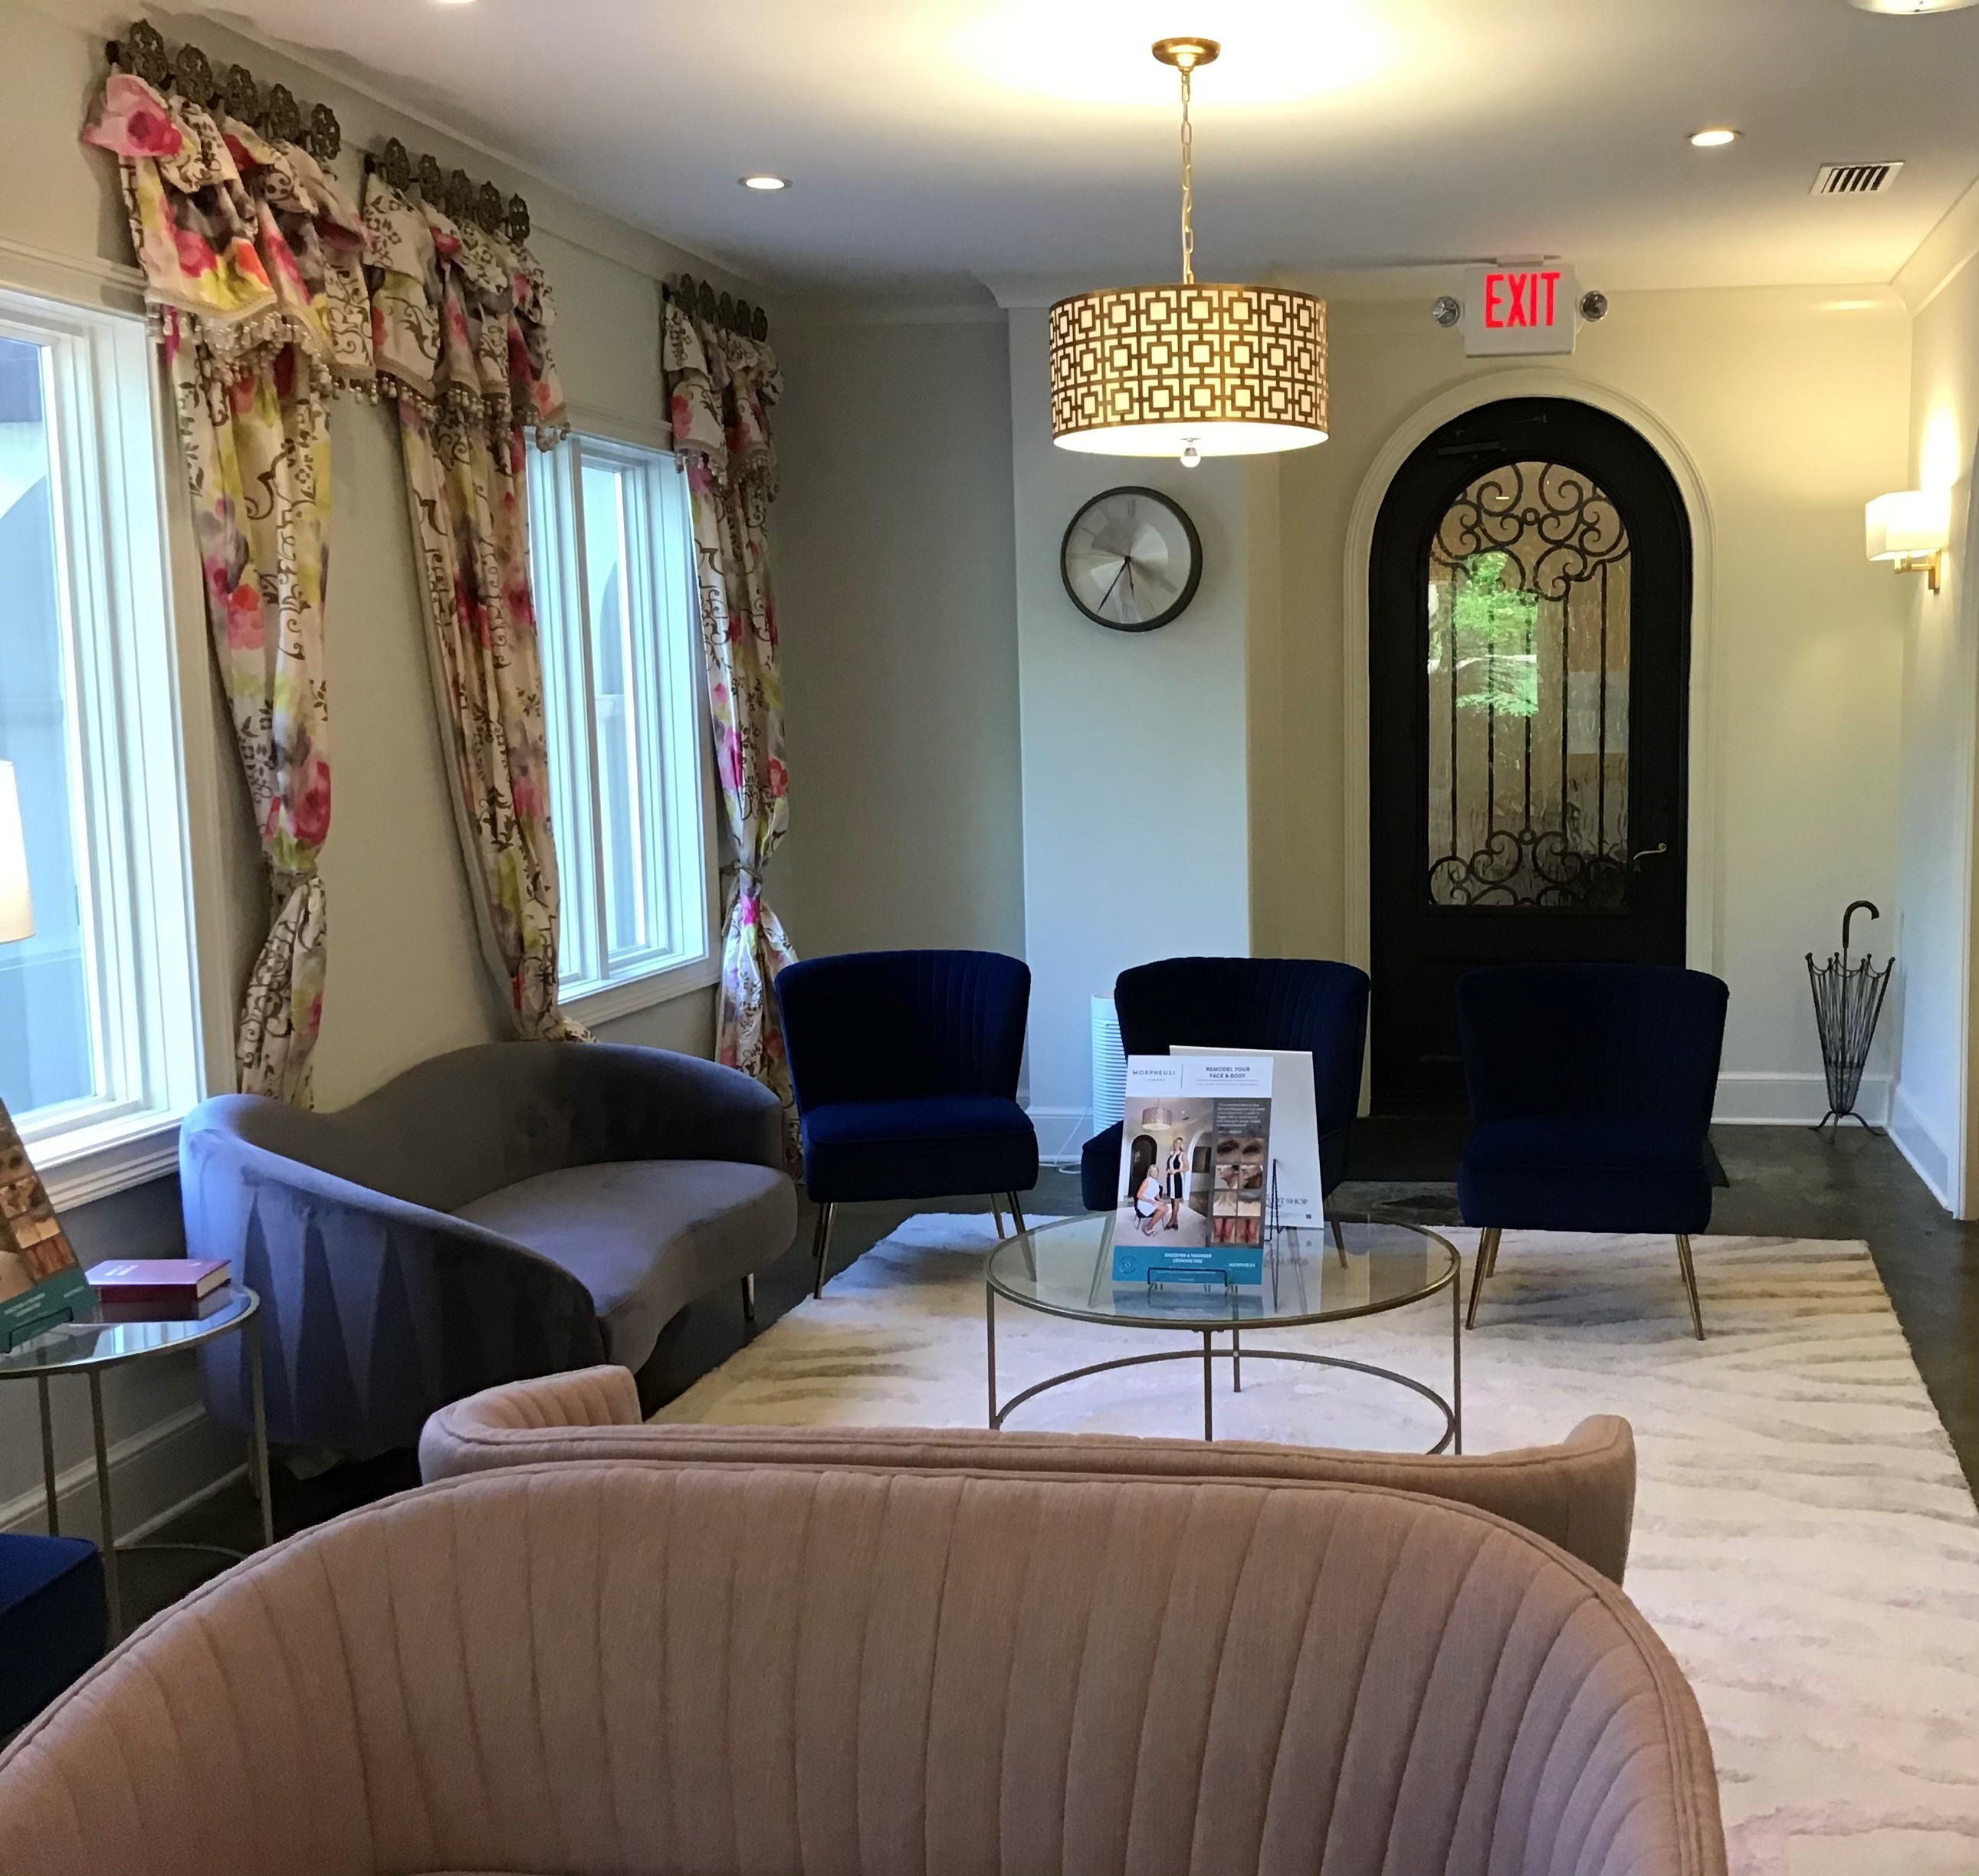 Southern Women's Specialists Gynecology and Urogynecologist Waiting room